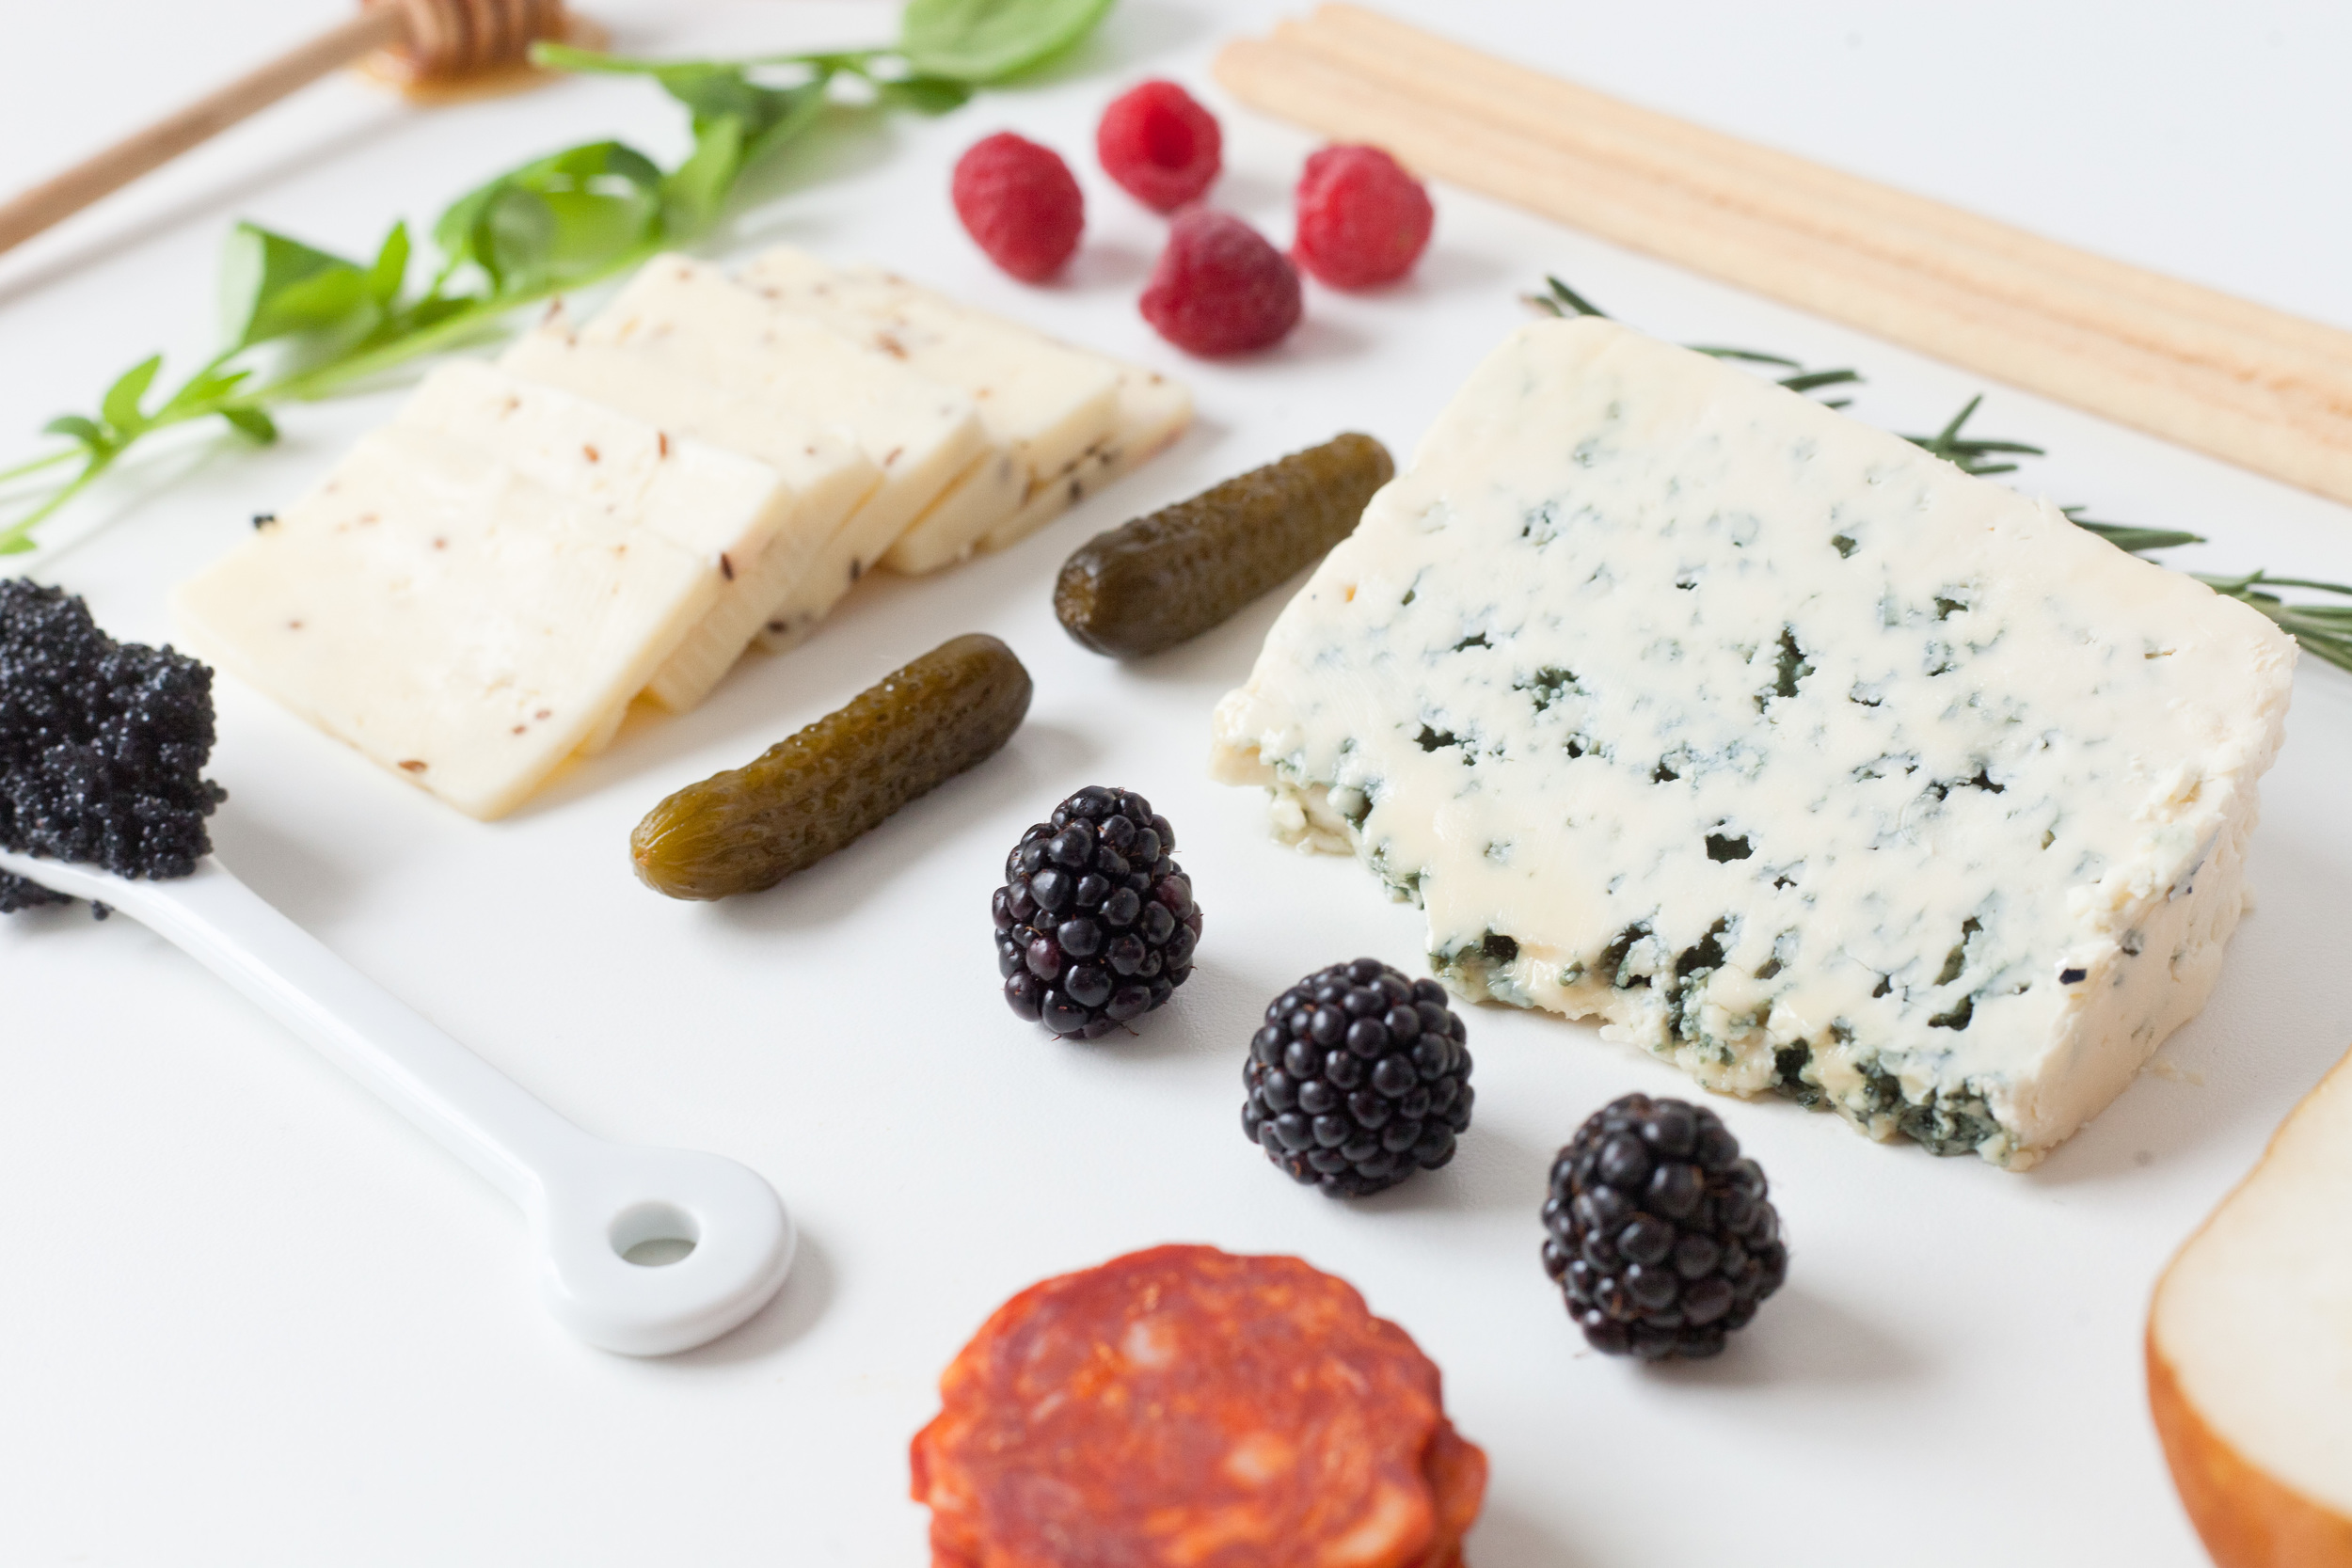 Ultimate Modern Spring Cheese Platter and Easy Raspberry Spread Recipe